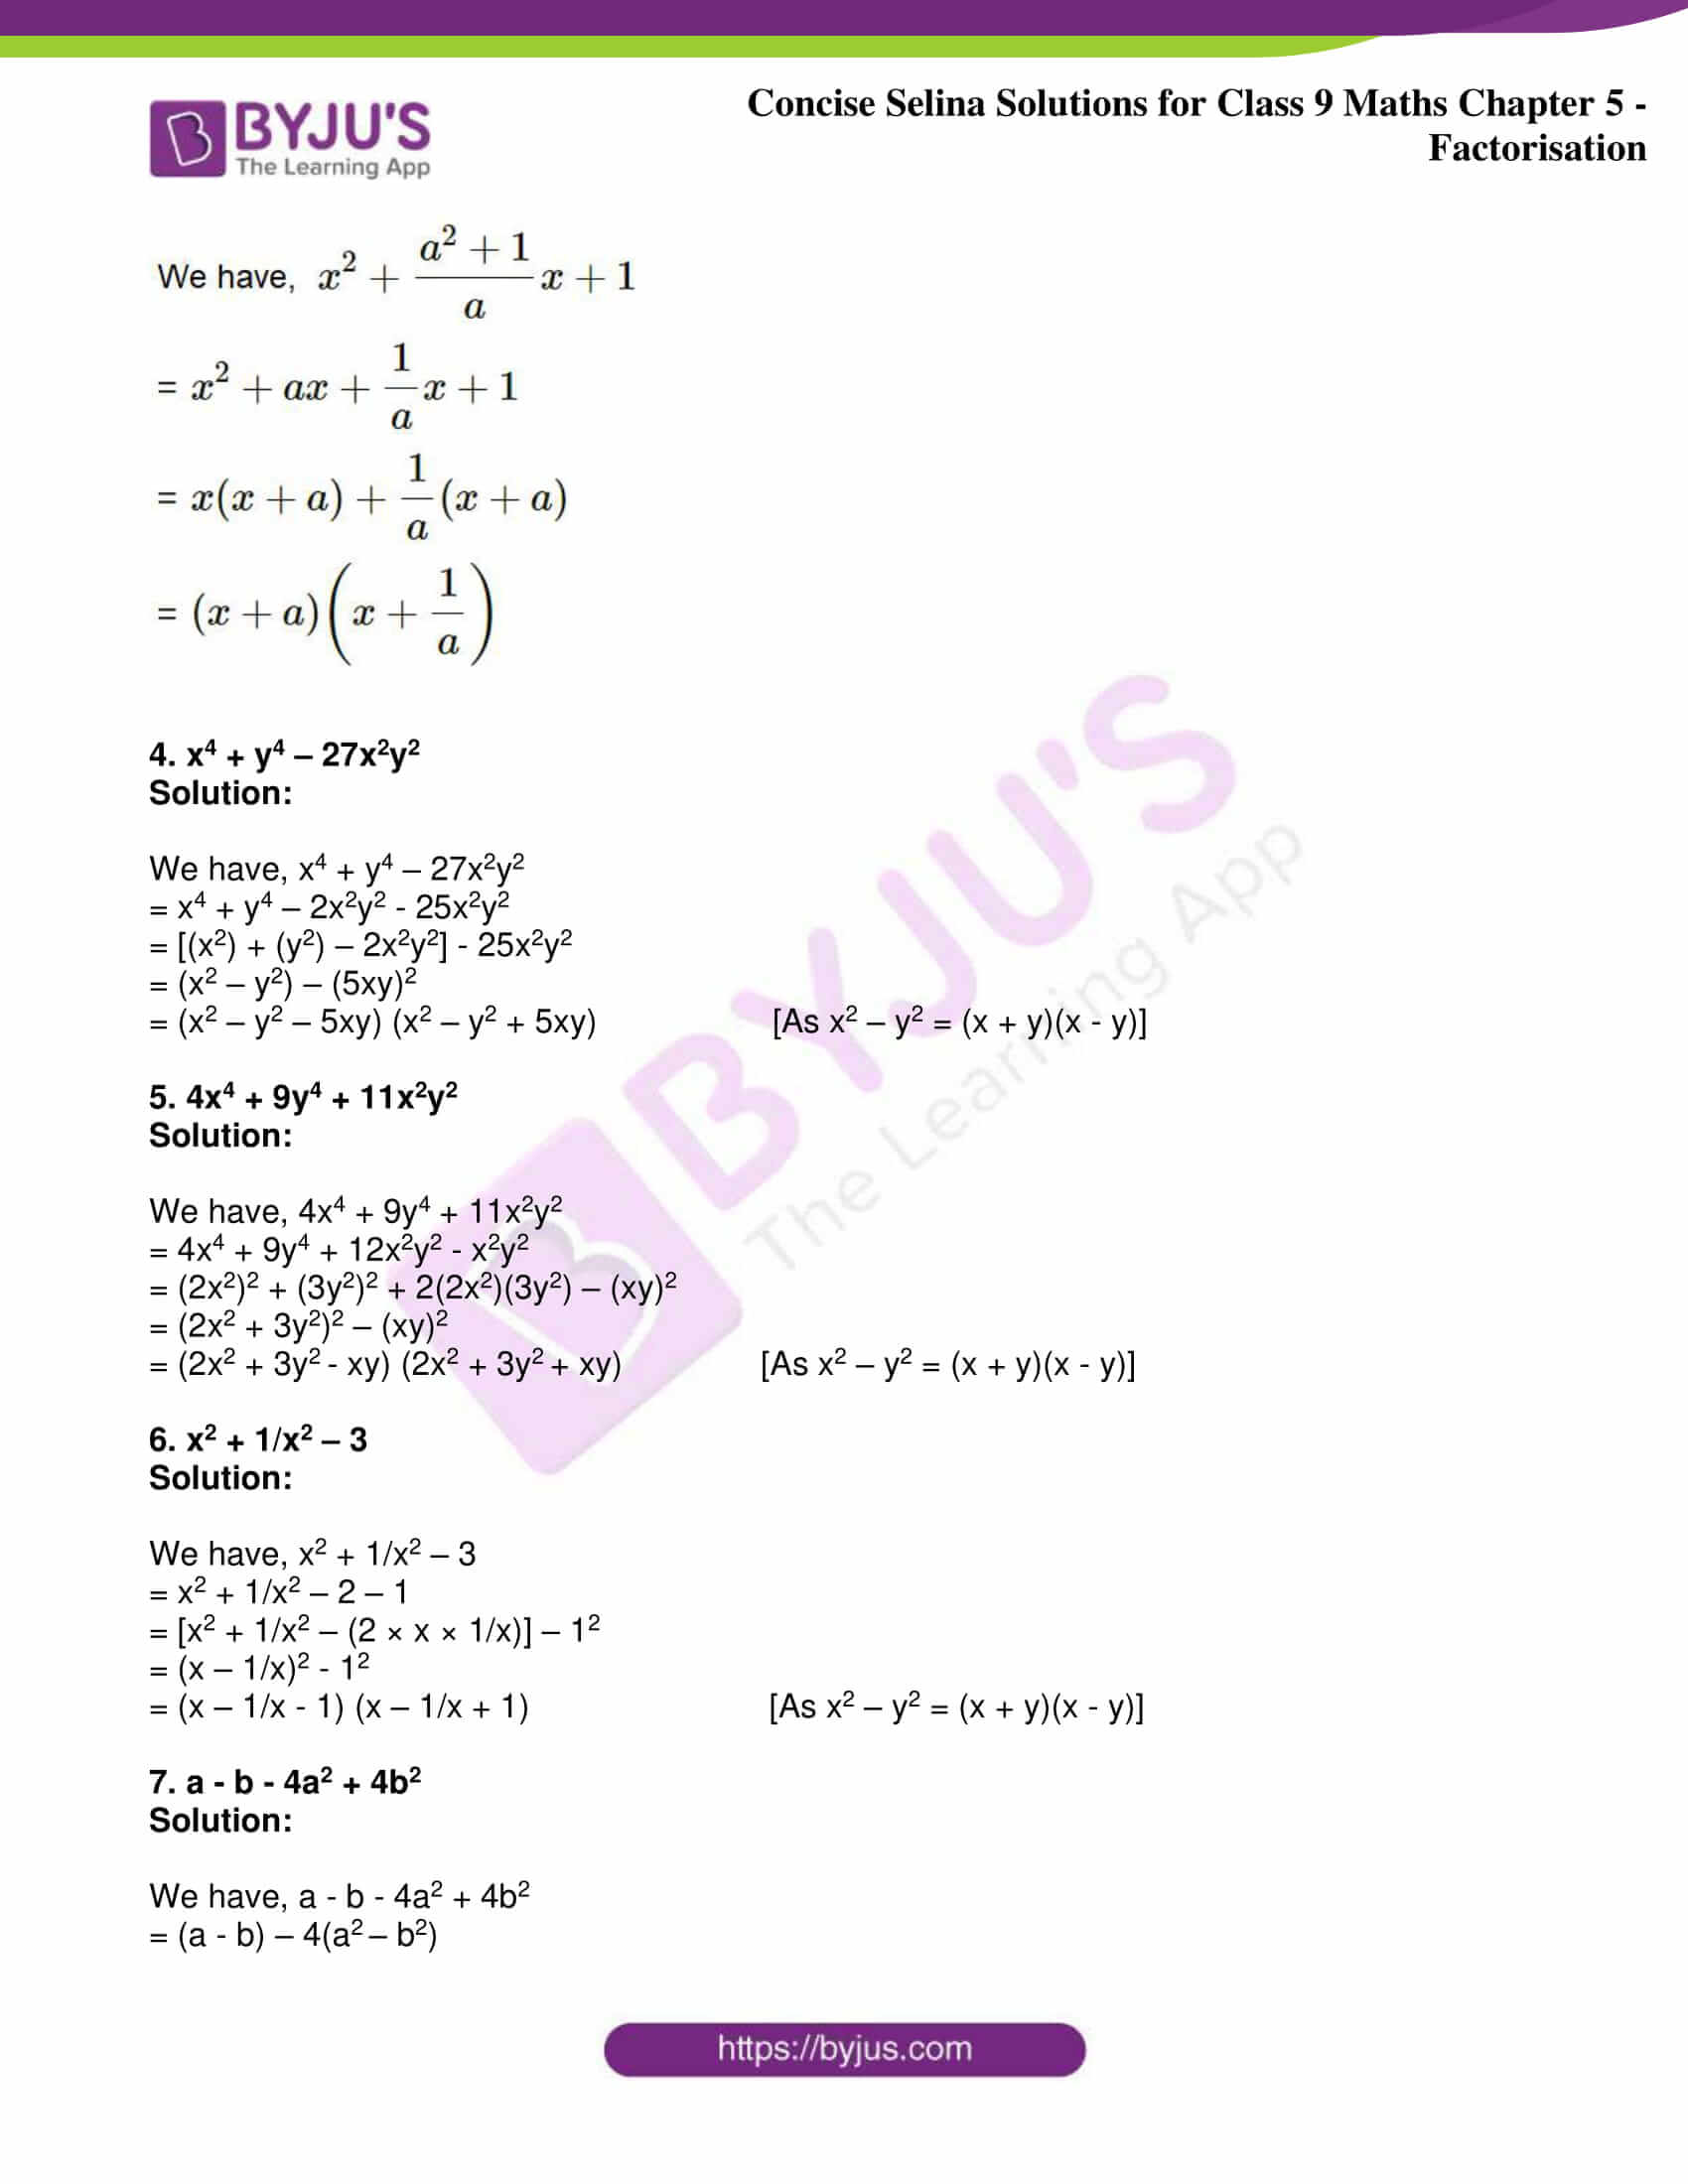 icse class 9 maths may10 selina solutions chapter 5 factorisation 26